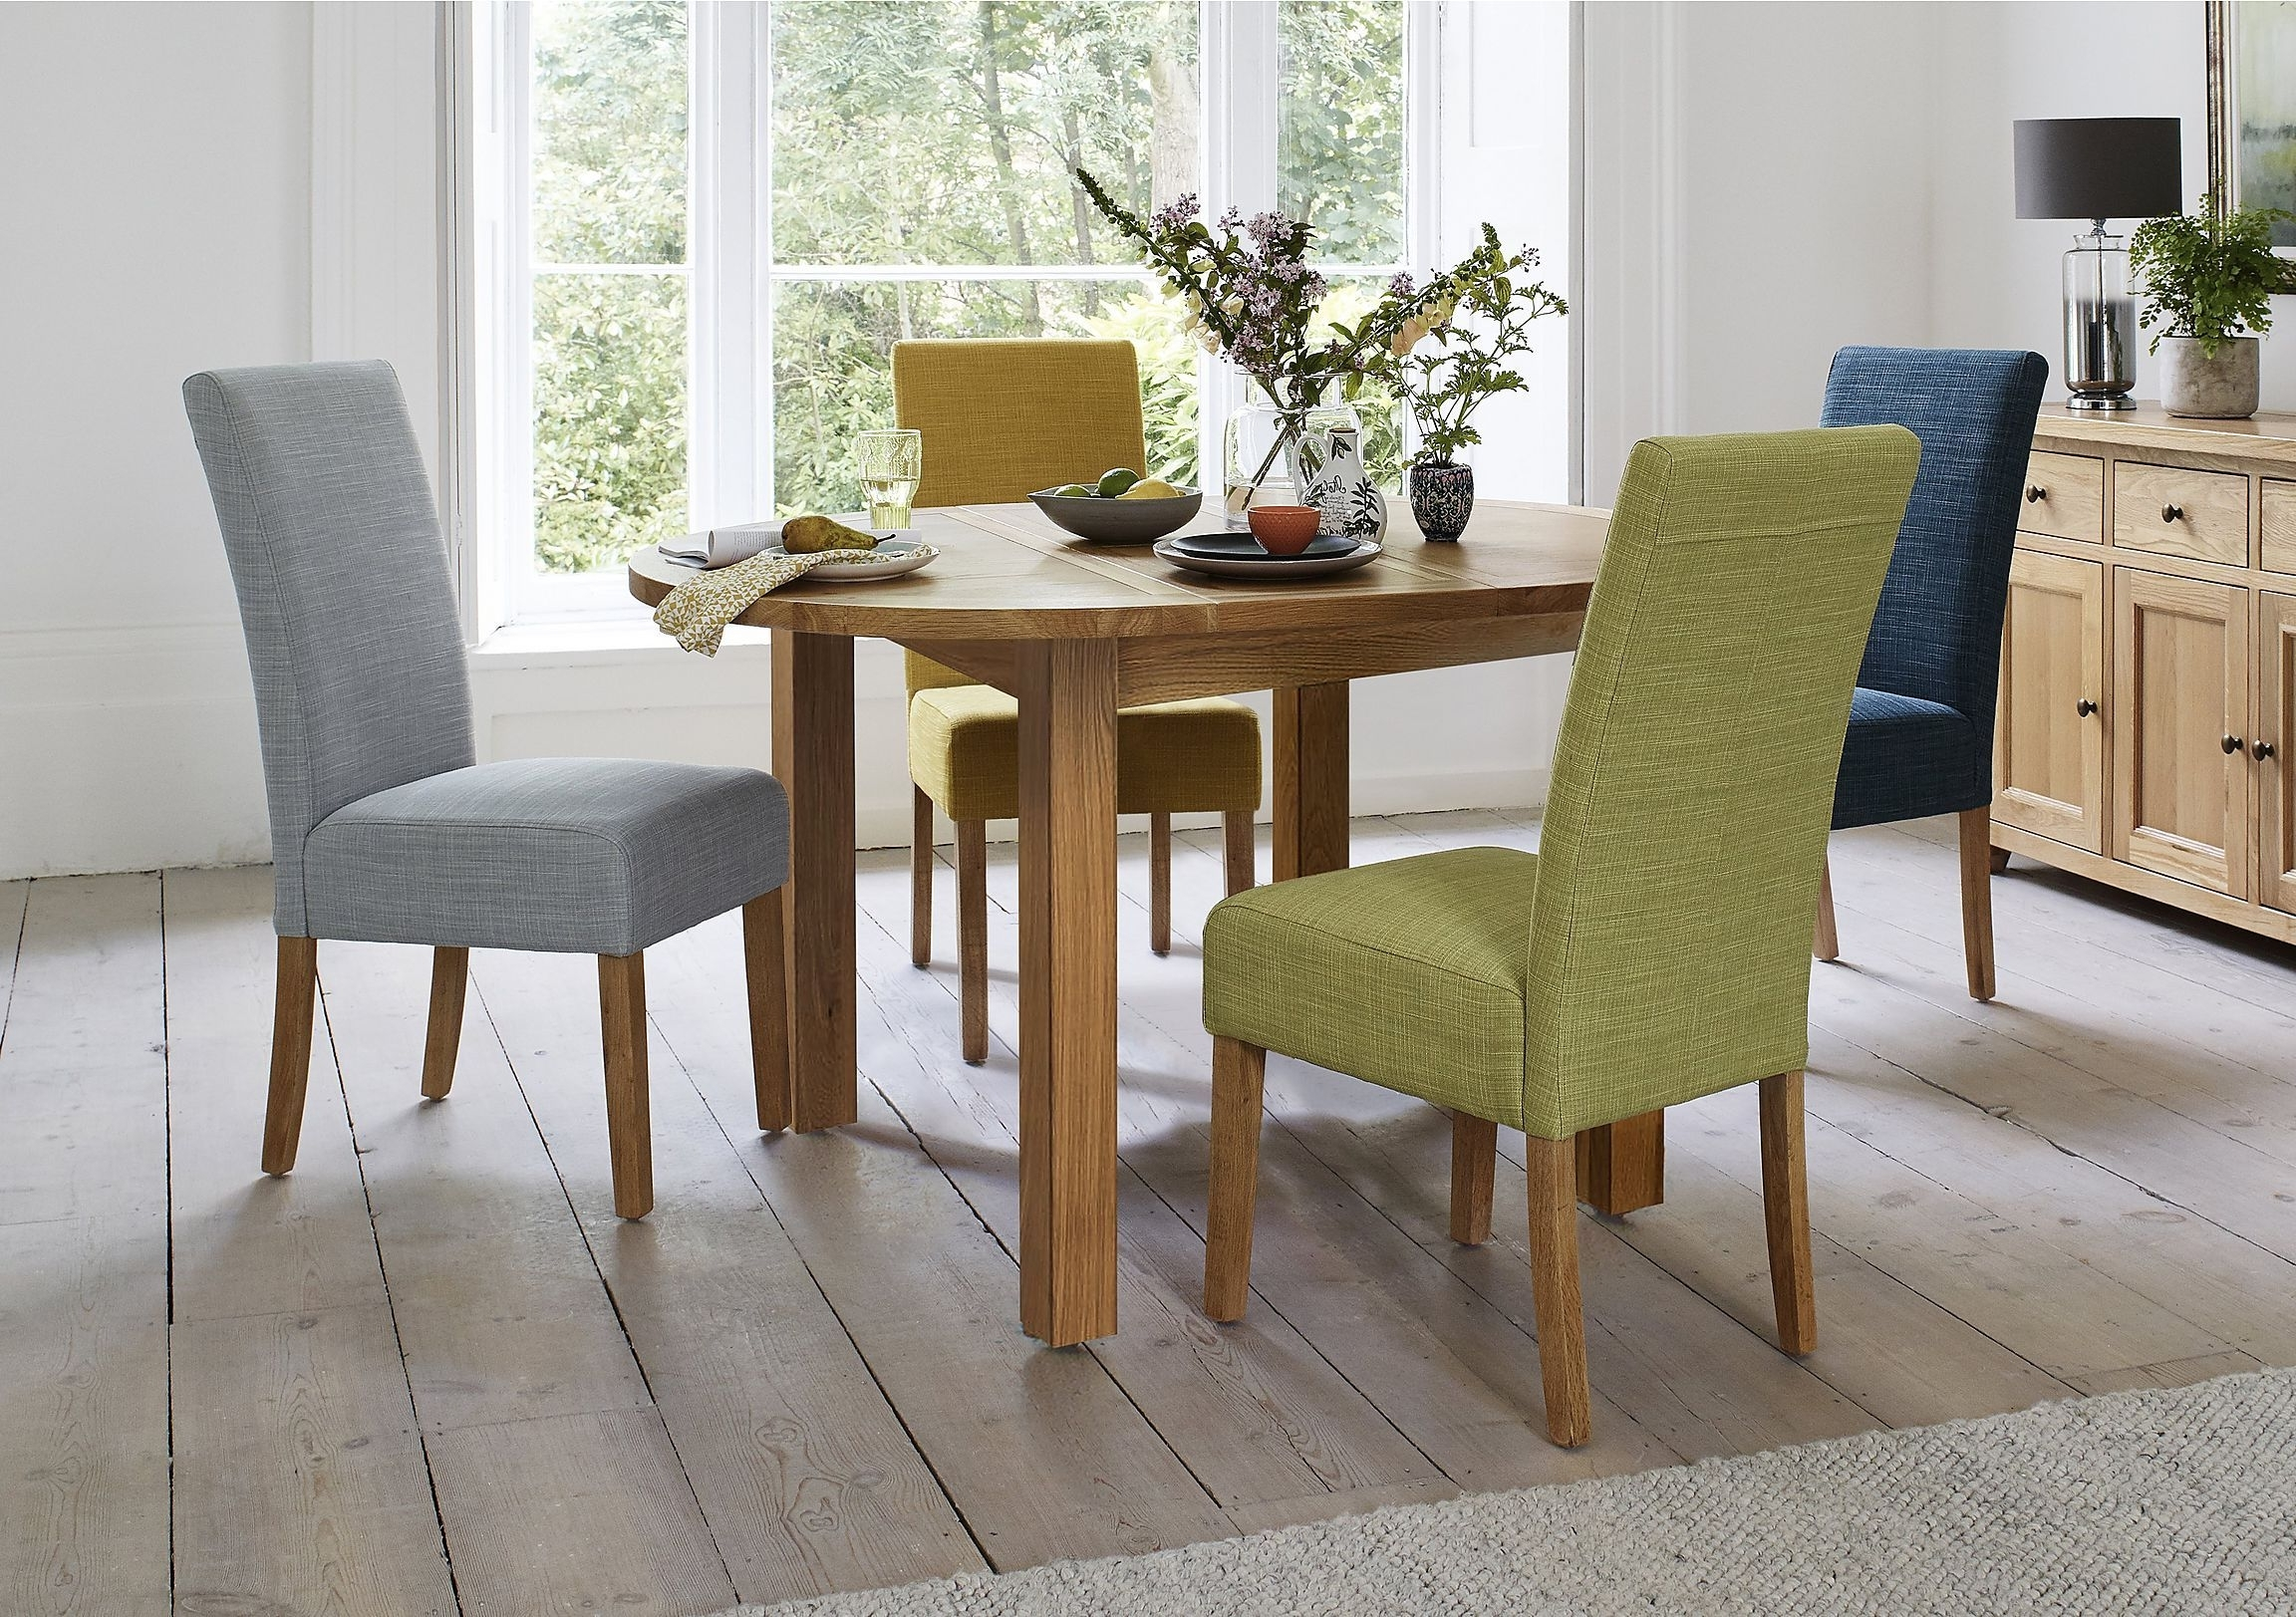 Dining Set Includes 4 Versatile Dining Chairs Upholstered In Fabric With Current Round Oak Dining Tables And 4 Chairs (View 10 of 25)